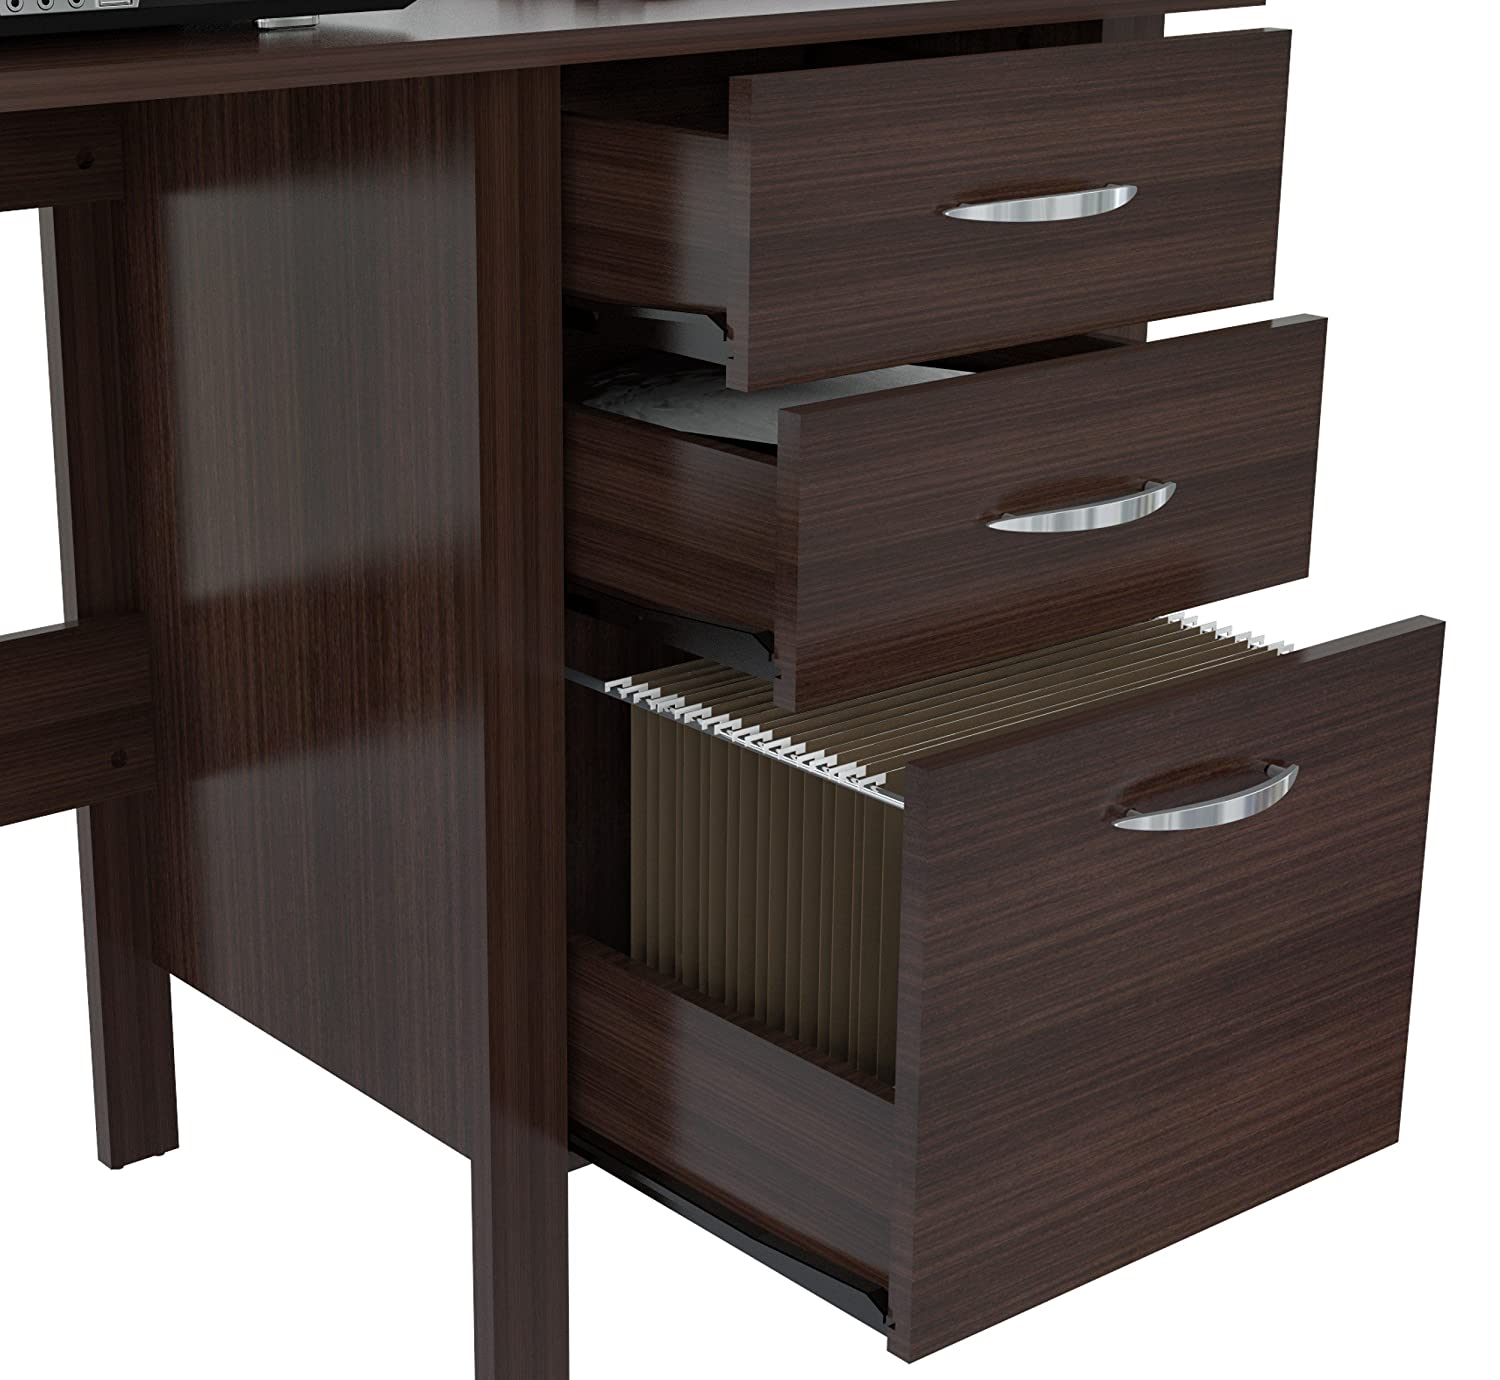 uk tetra desk for computer drawers and co effect furniture cupboard walnut kitchen pc amazon with dark shelves piranha dp in home office